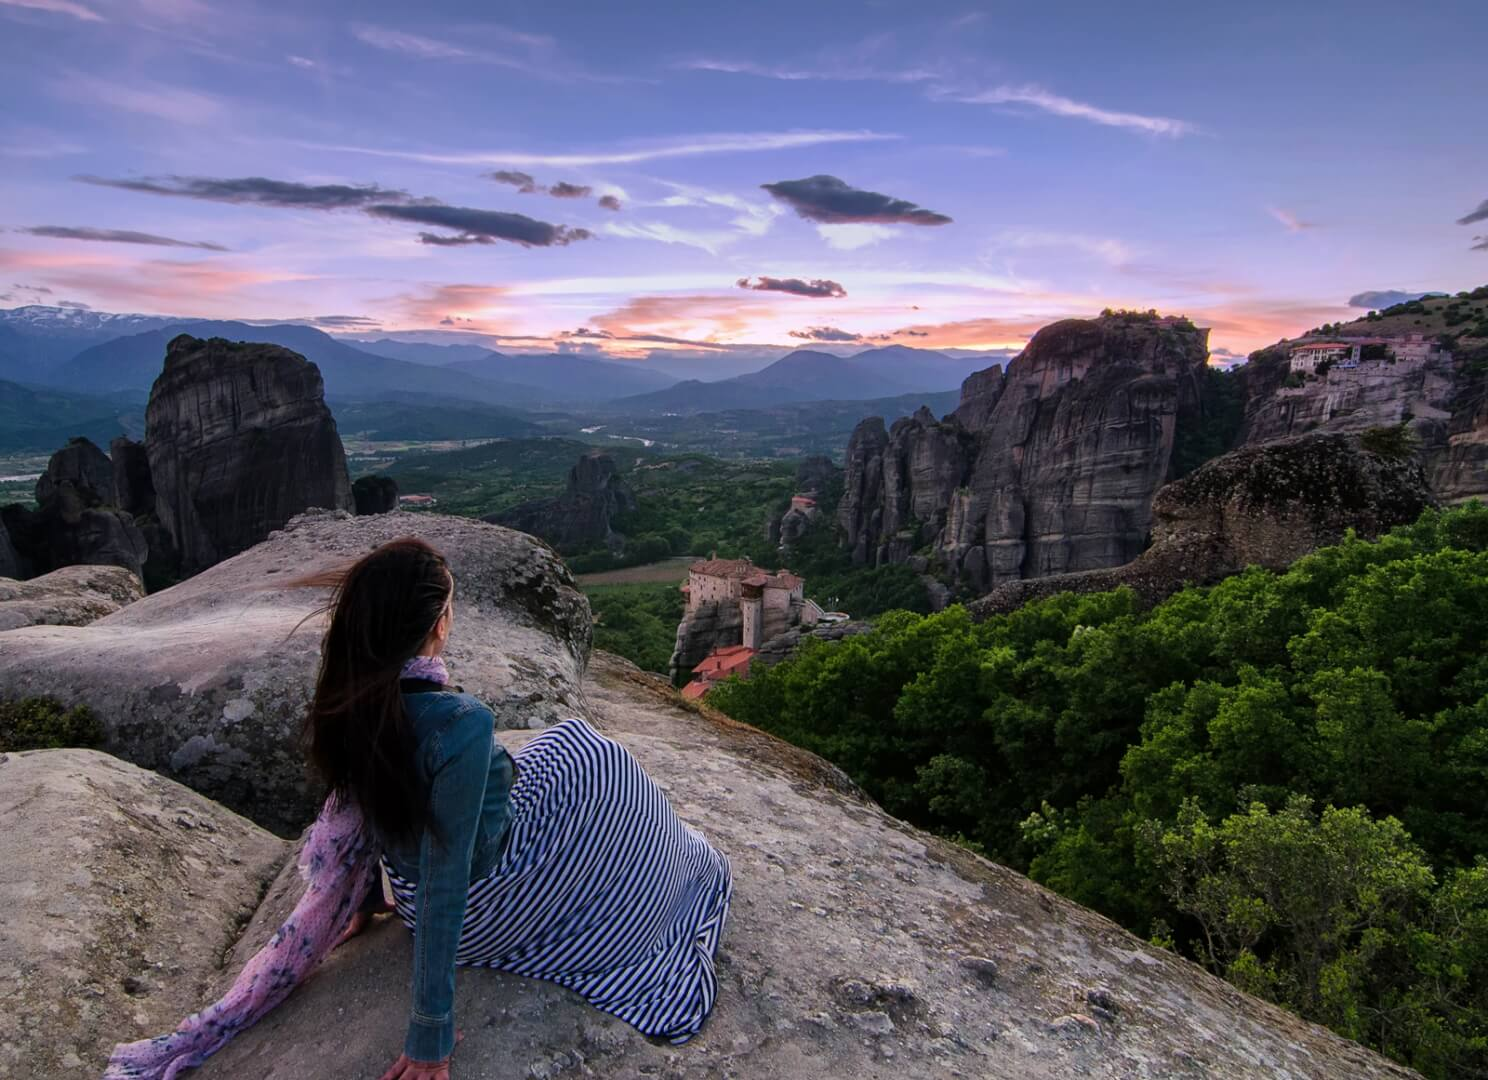 meteora-greece-la-vie-en-blog-all-rights-reserved11